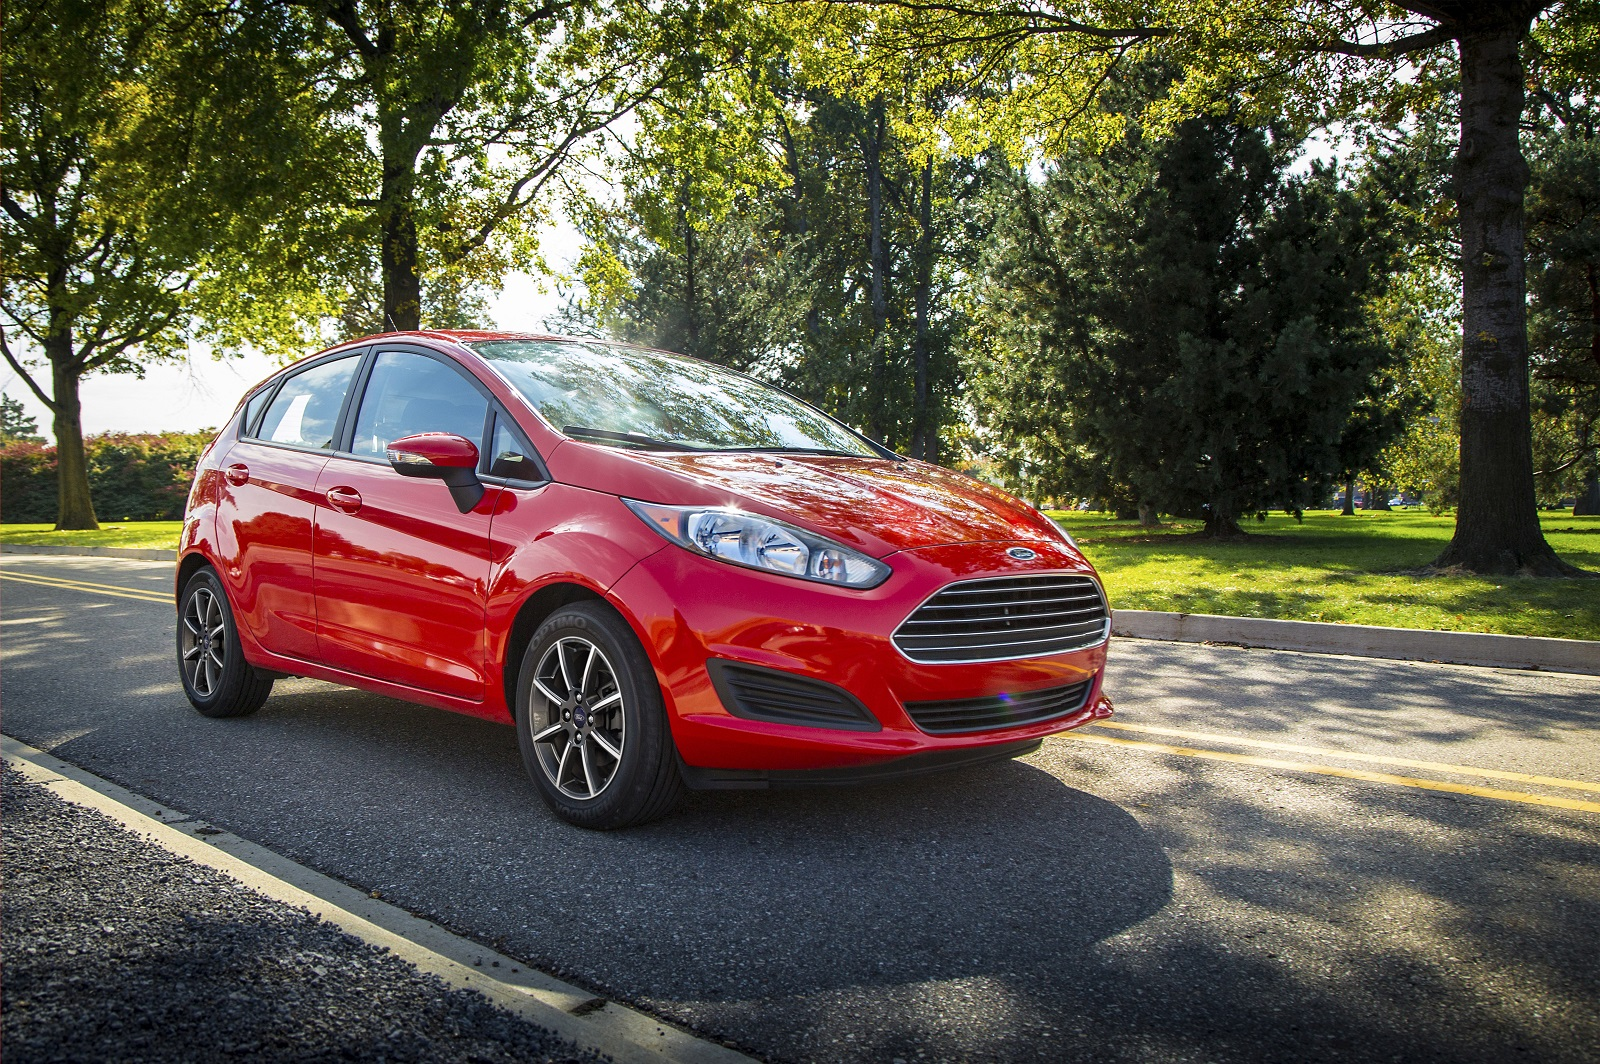 2015 Ford Fiesta Review Ratings Specs Prices And Photos The Car Connection